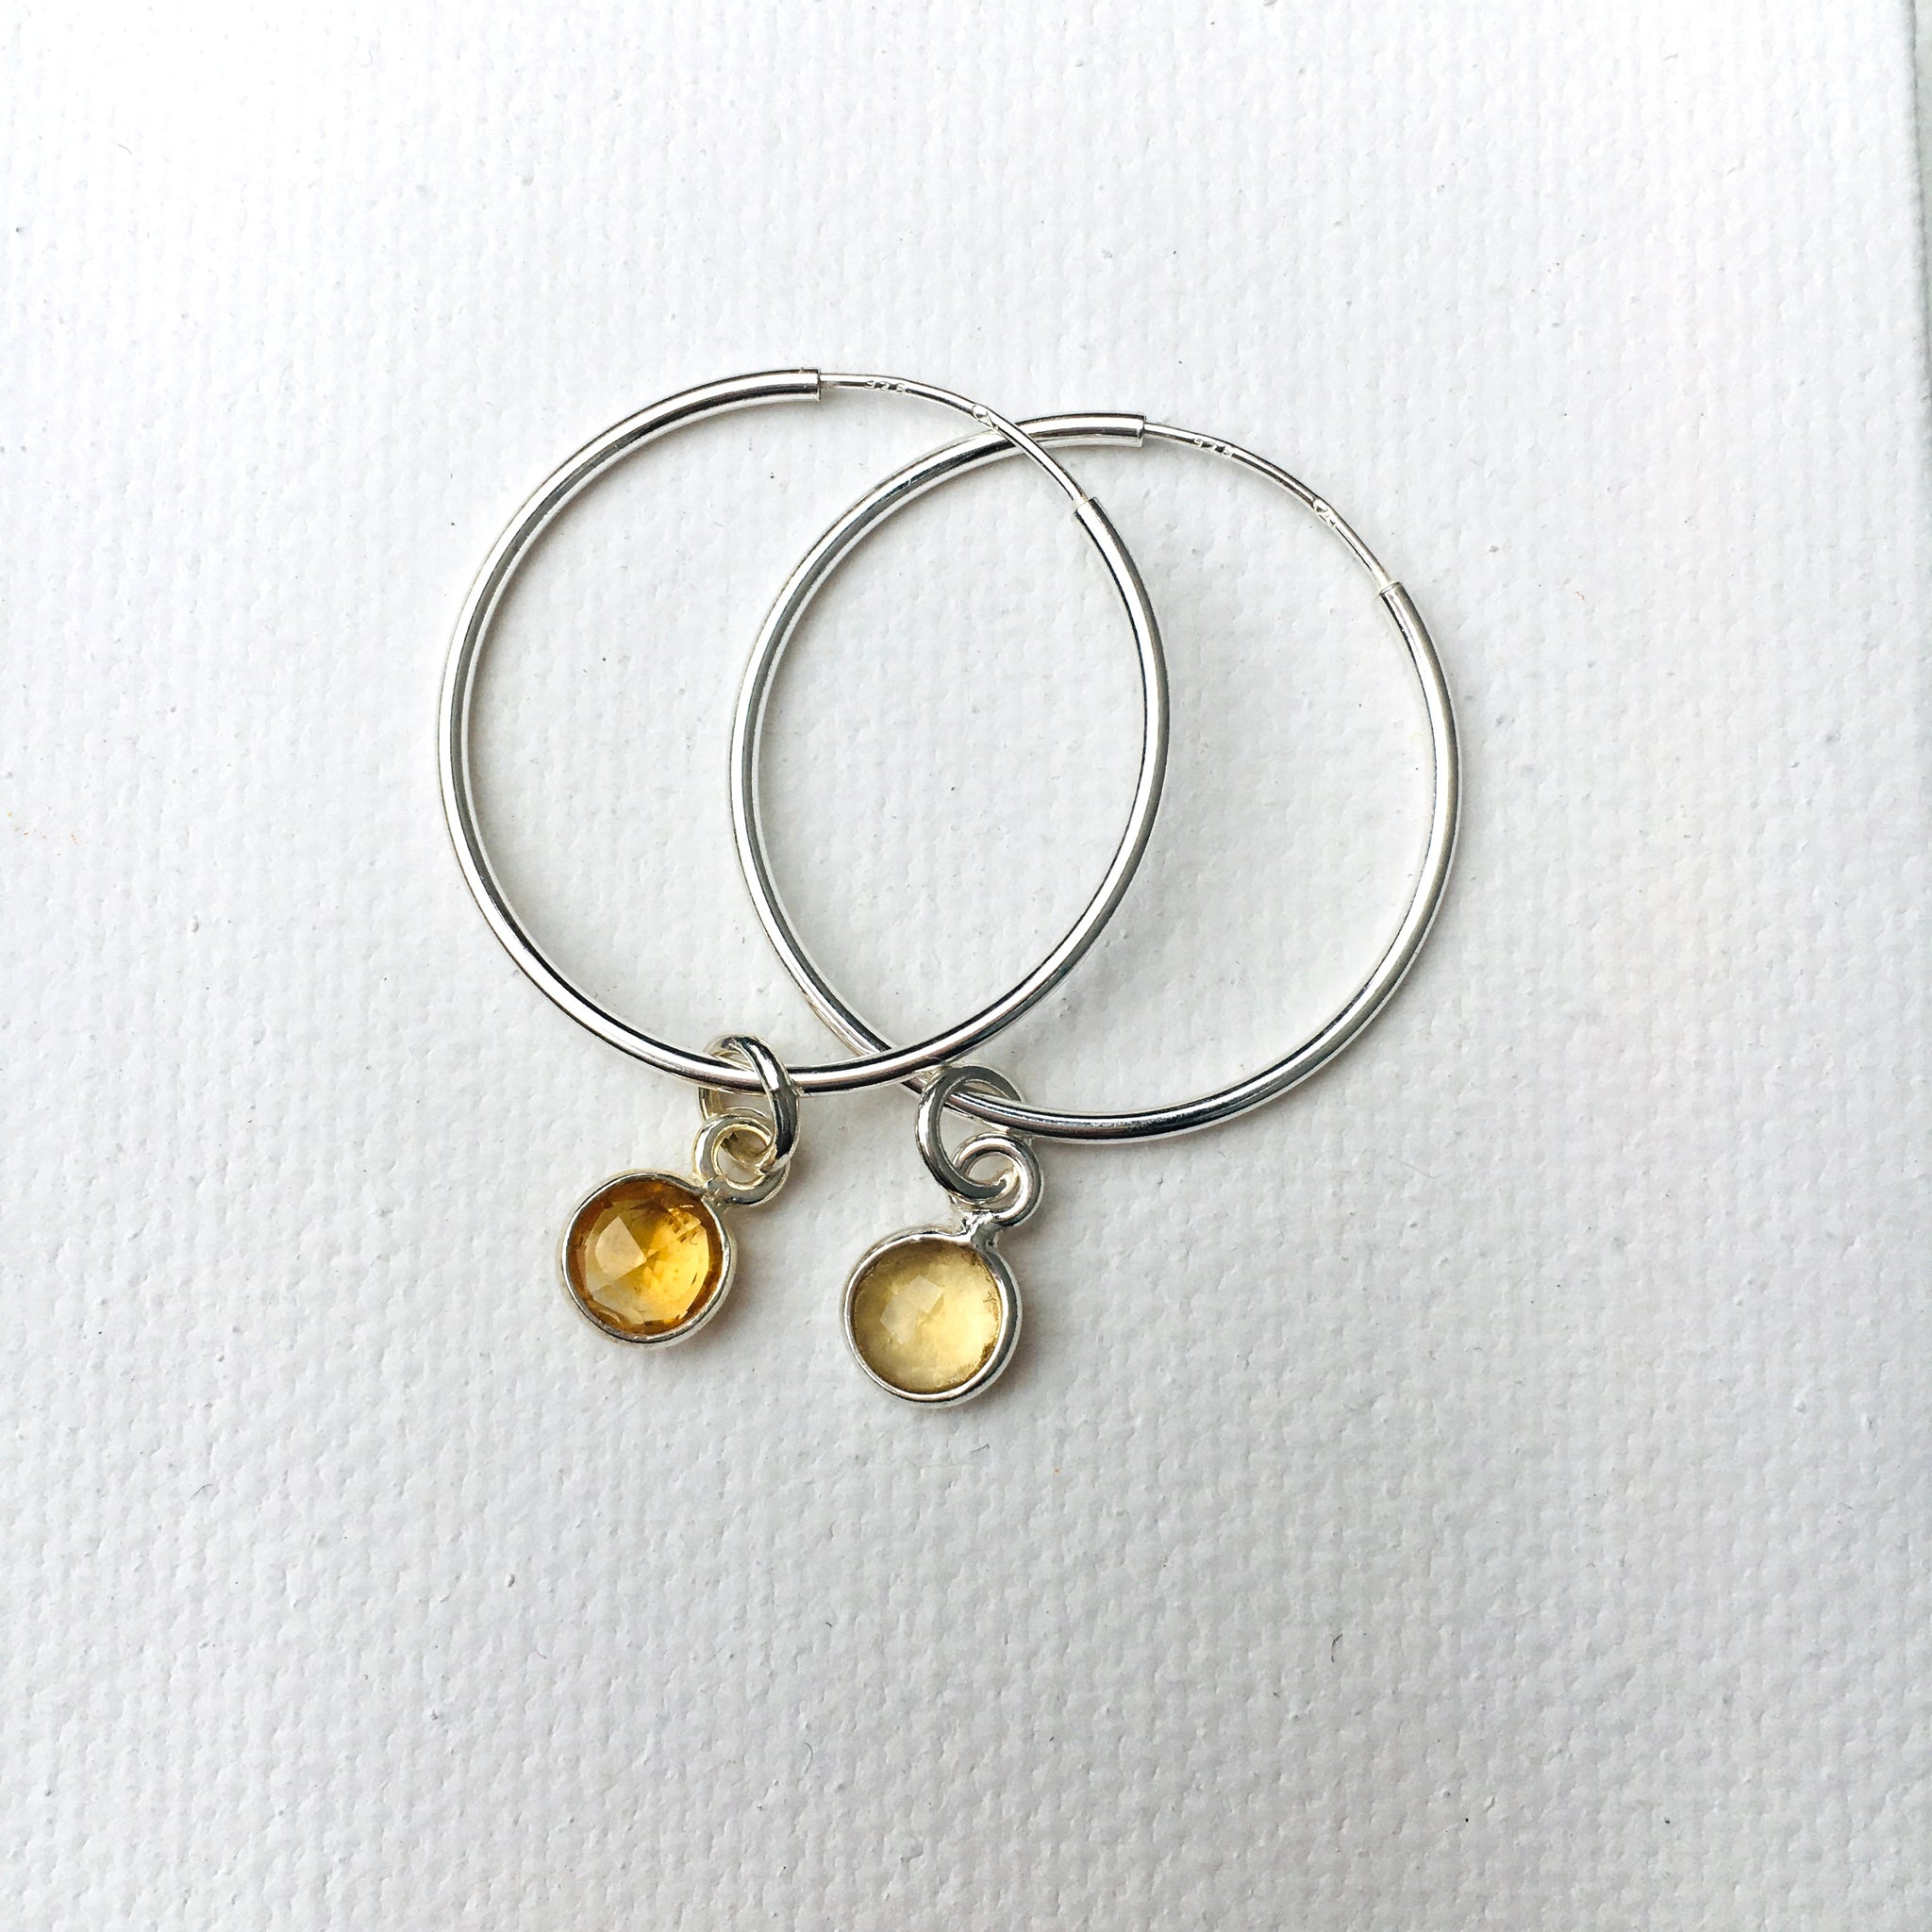 Green Eyed Kitty Deco Silver Hoops - Citrine